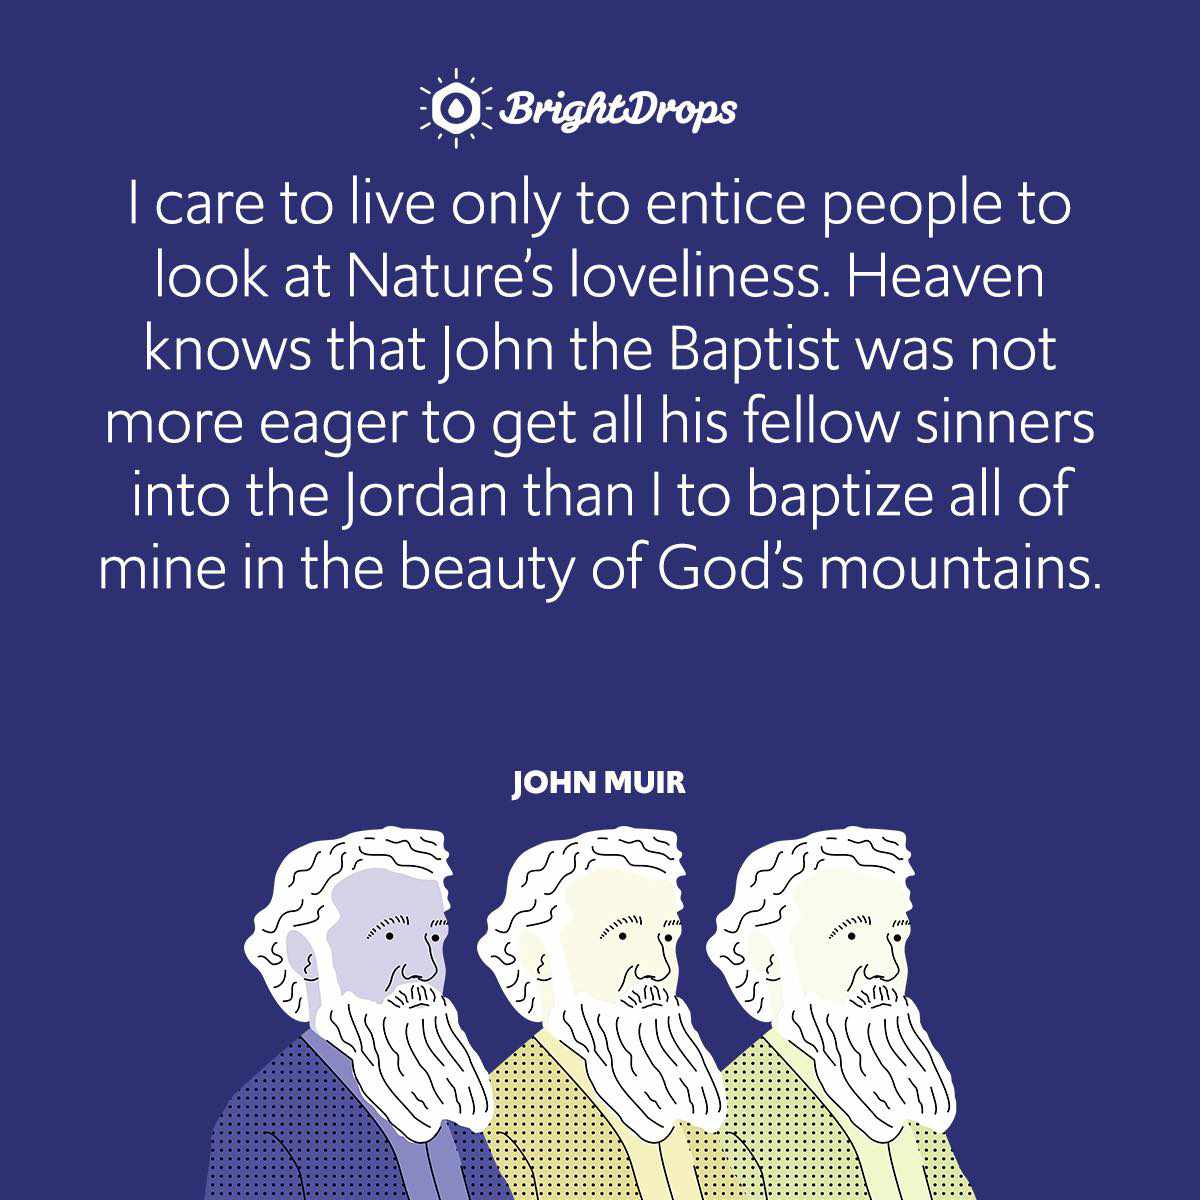 I care to live only to entice people to look at Nature's loveliness. Heaven knows that John the Baptist was not more eager to get all his fellow sinners into the Jordan than I to baptize all of mine in the beauty of God's mountains.